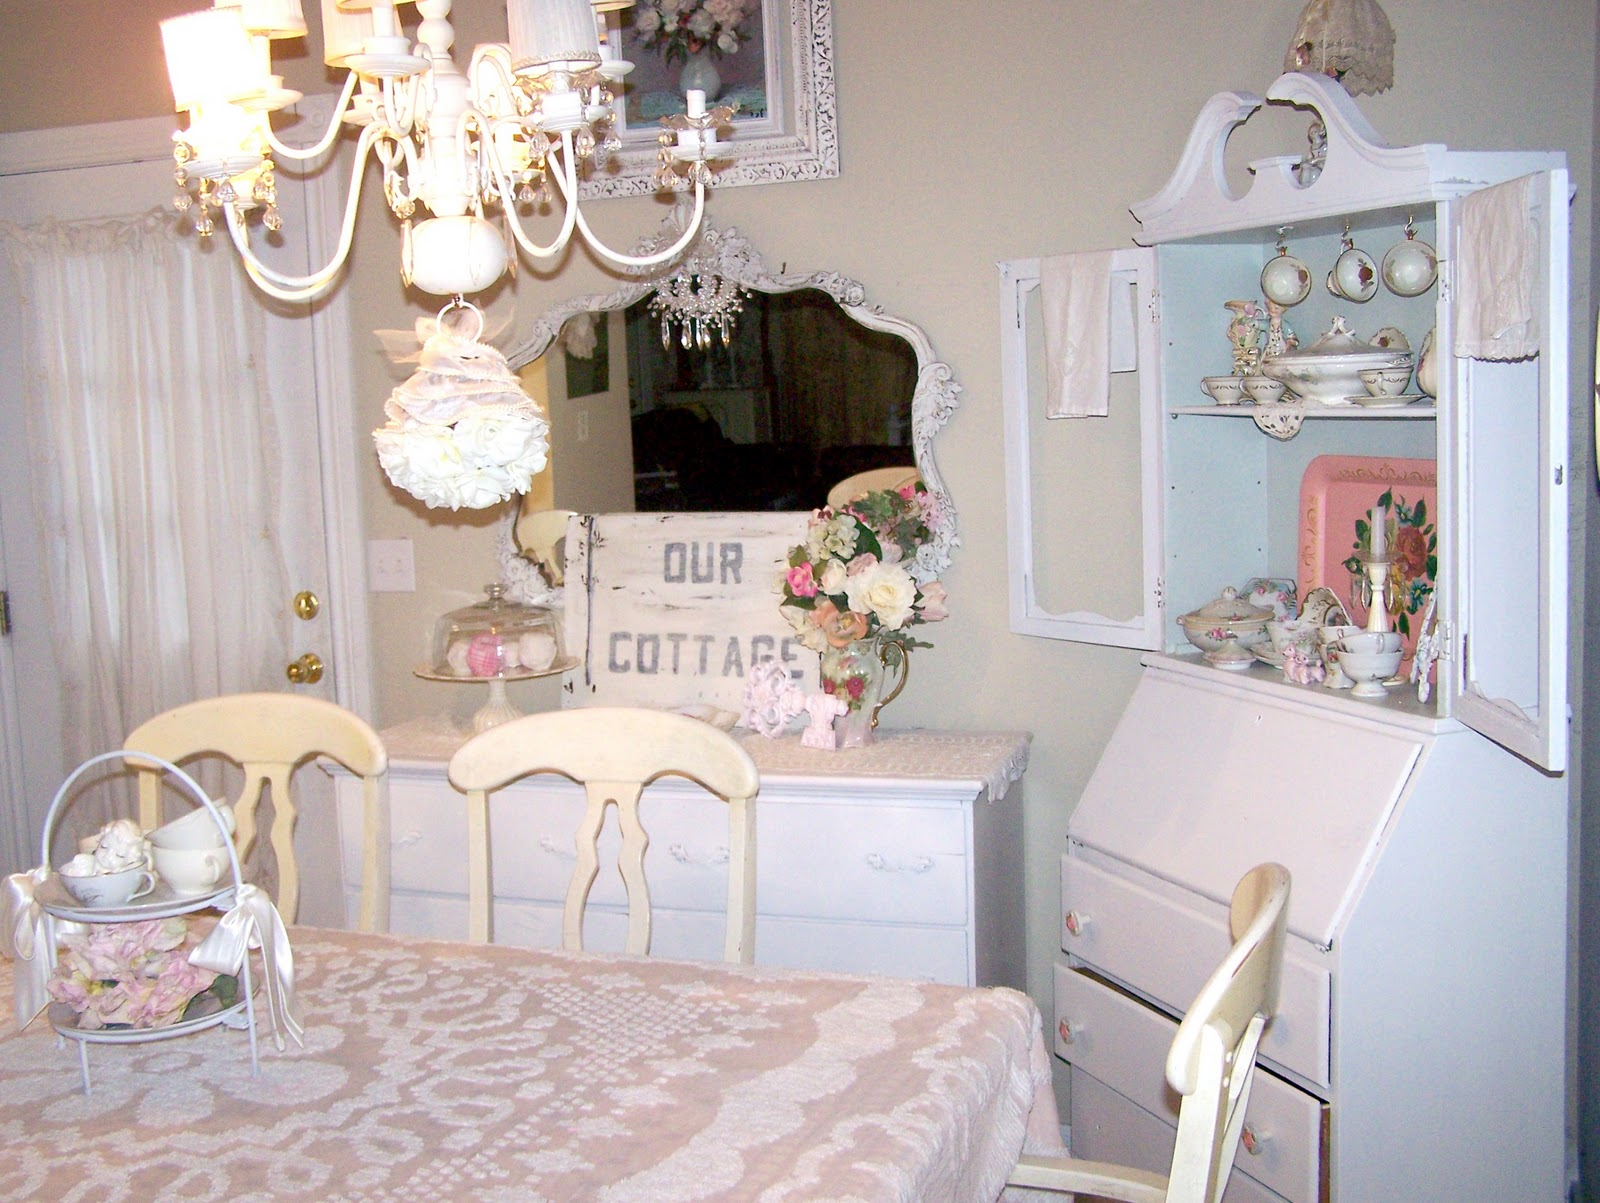 Olivia's Romantic Home: Shabby Chic Cottage Dining Room!